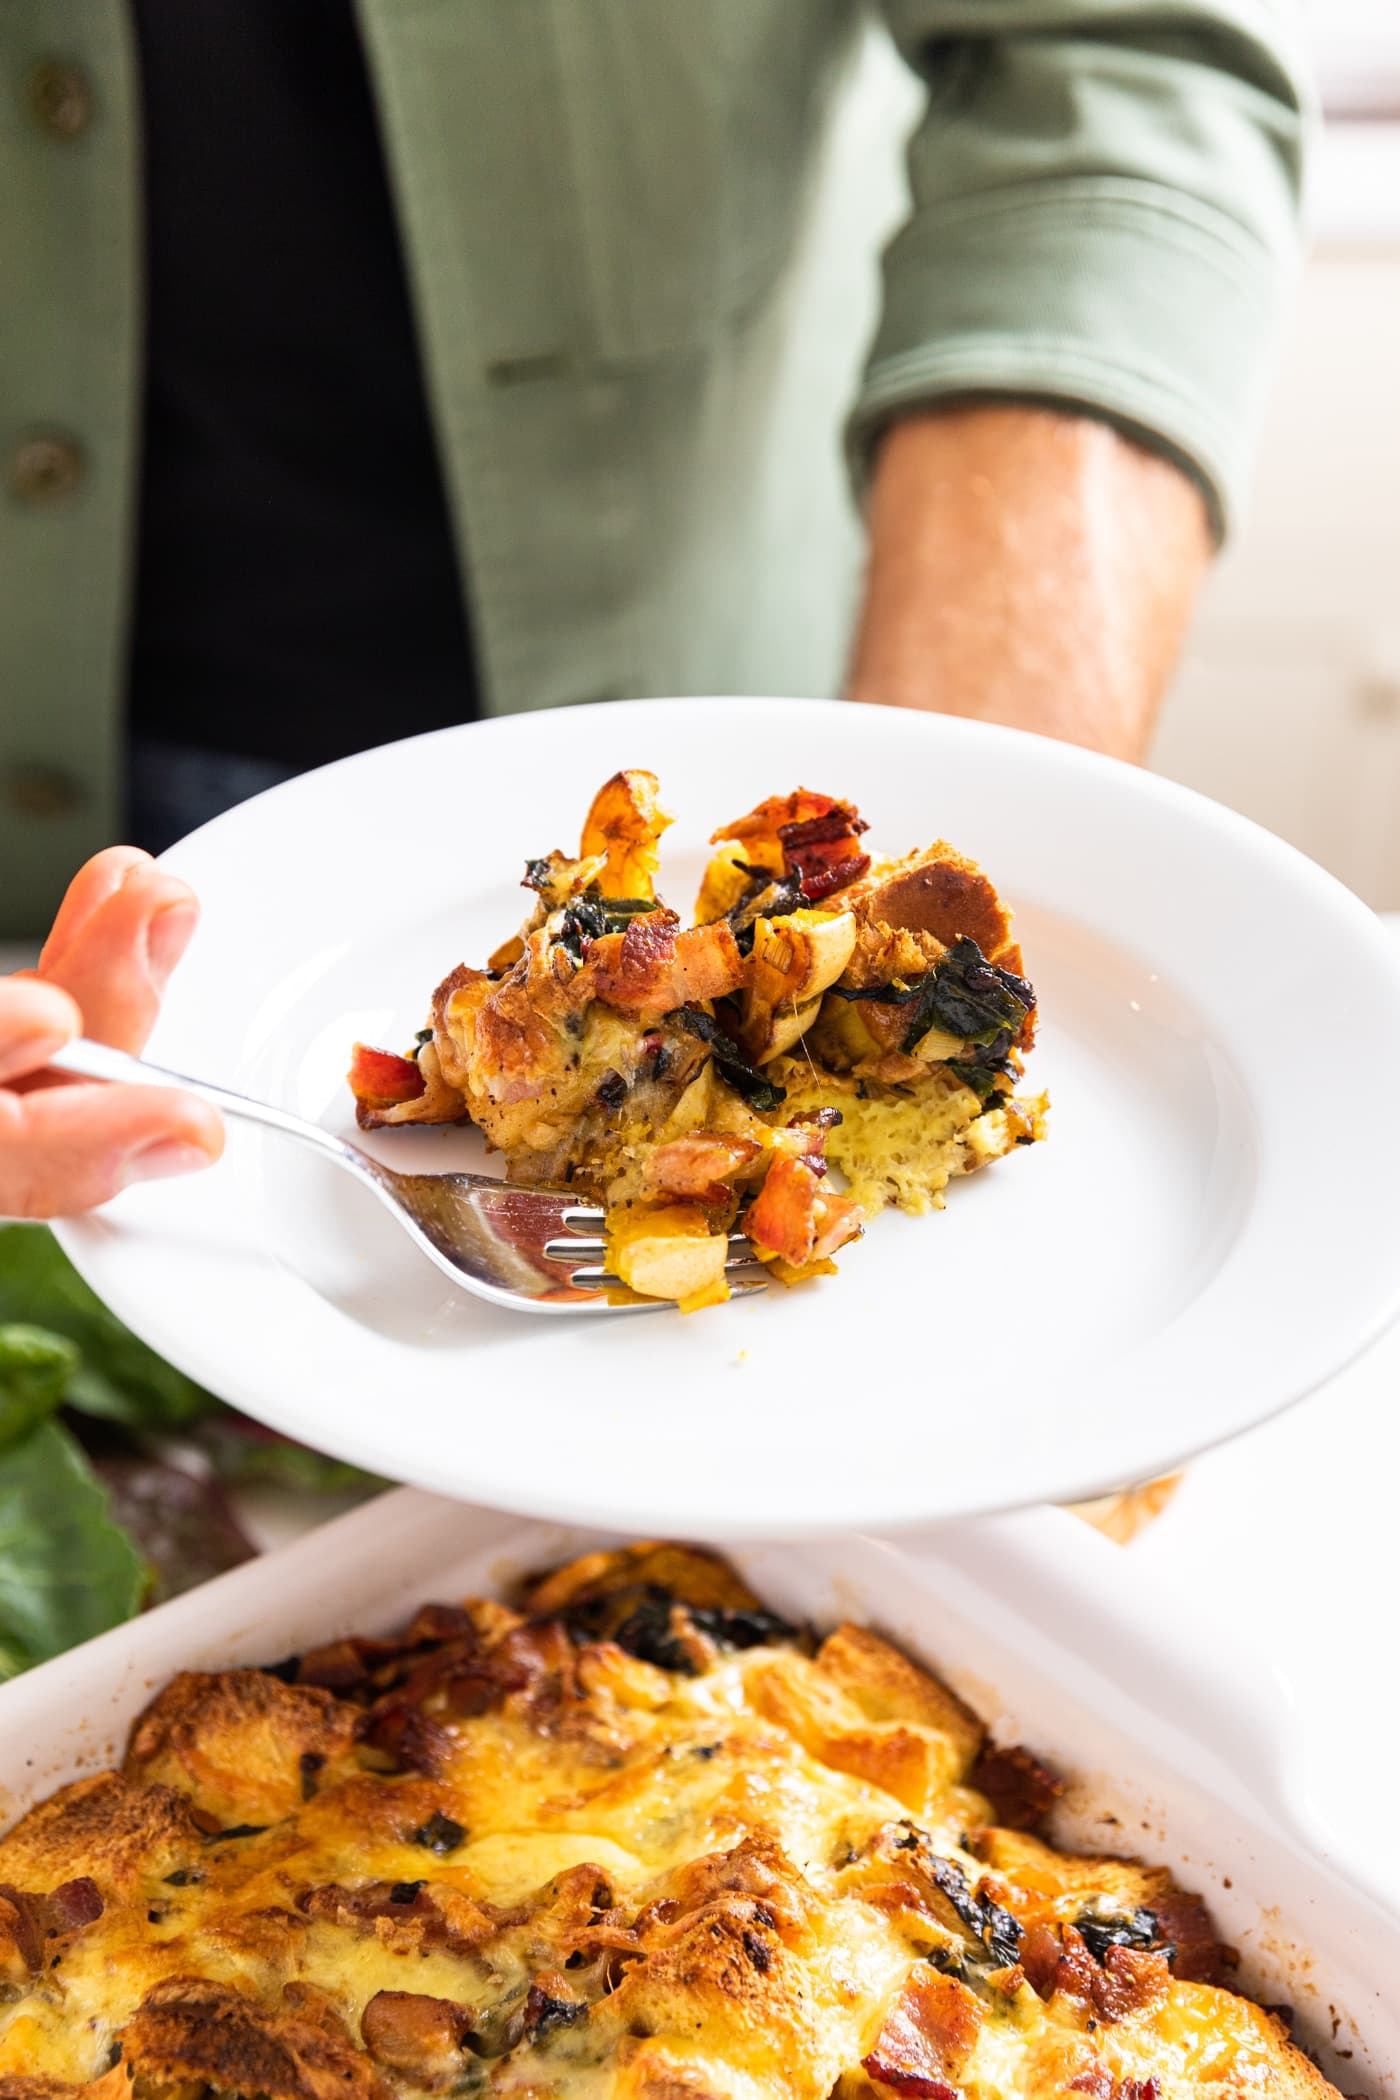 Hand holding white plate filled with scoop or squash strata with fork taking out a piece with rest of strata in white casserole dish below